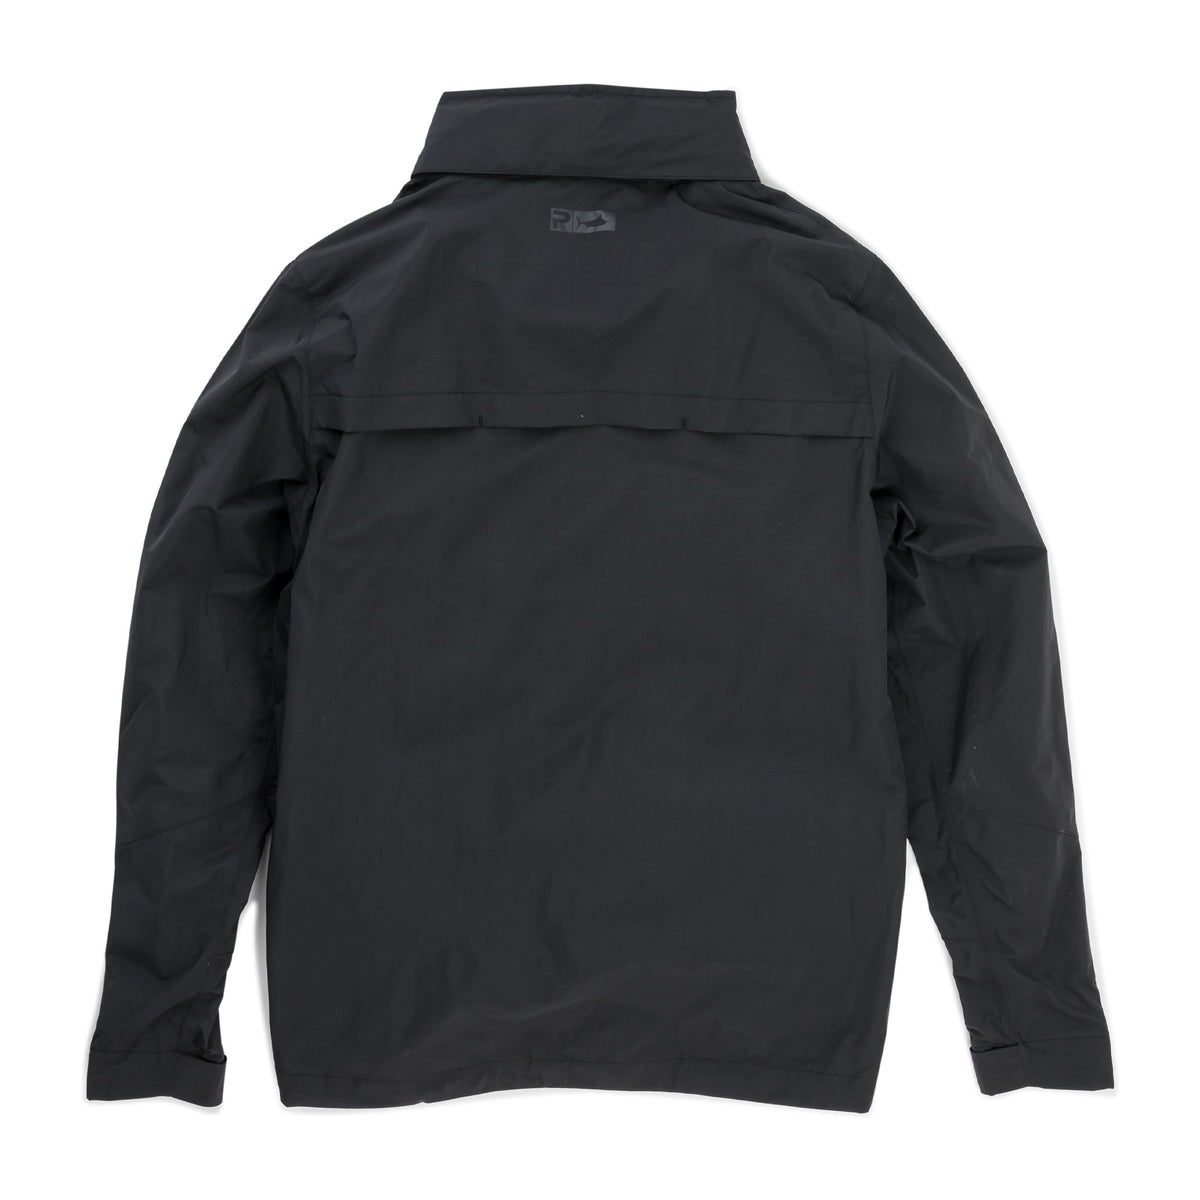 Outrigger Lightweight Jacket Big Image - 2